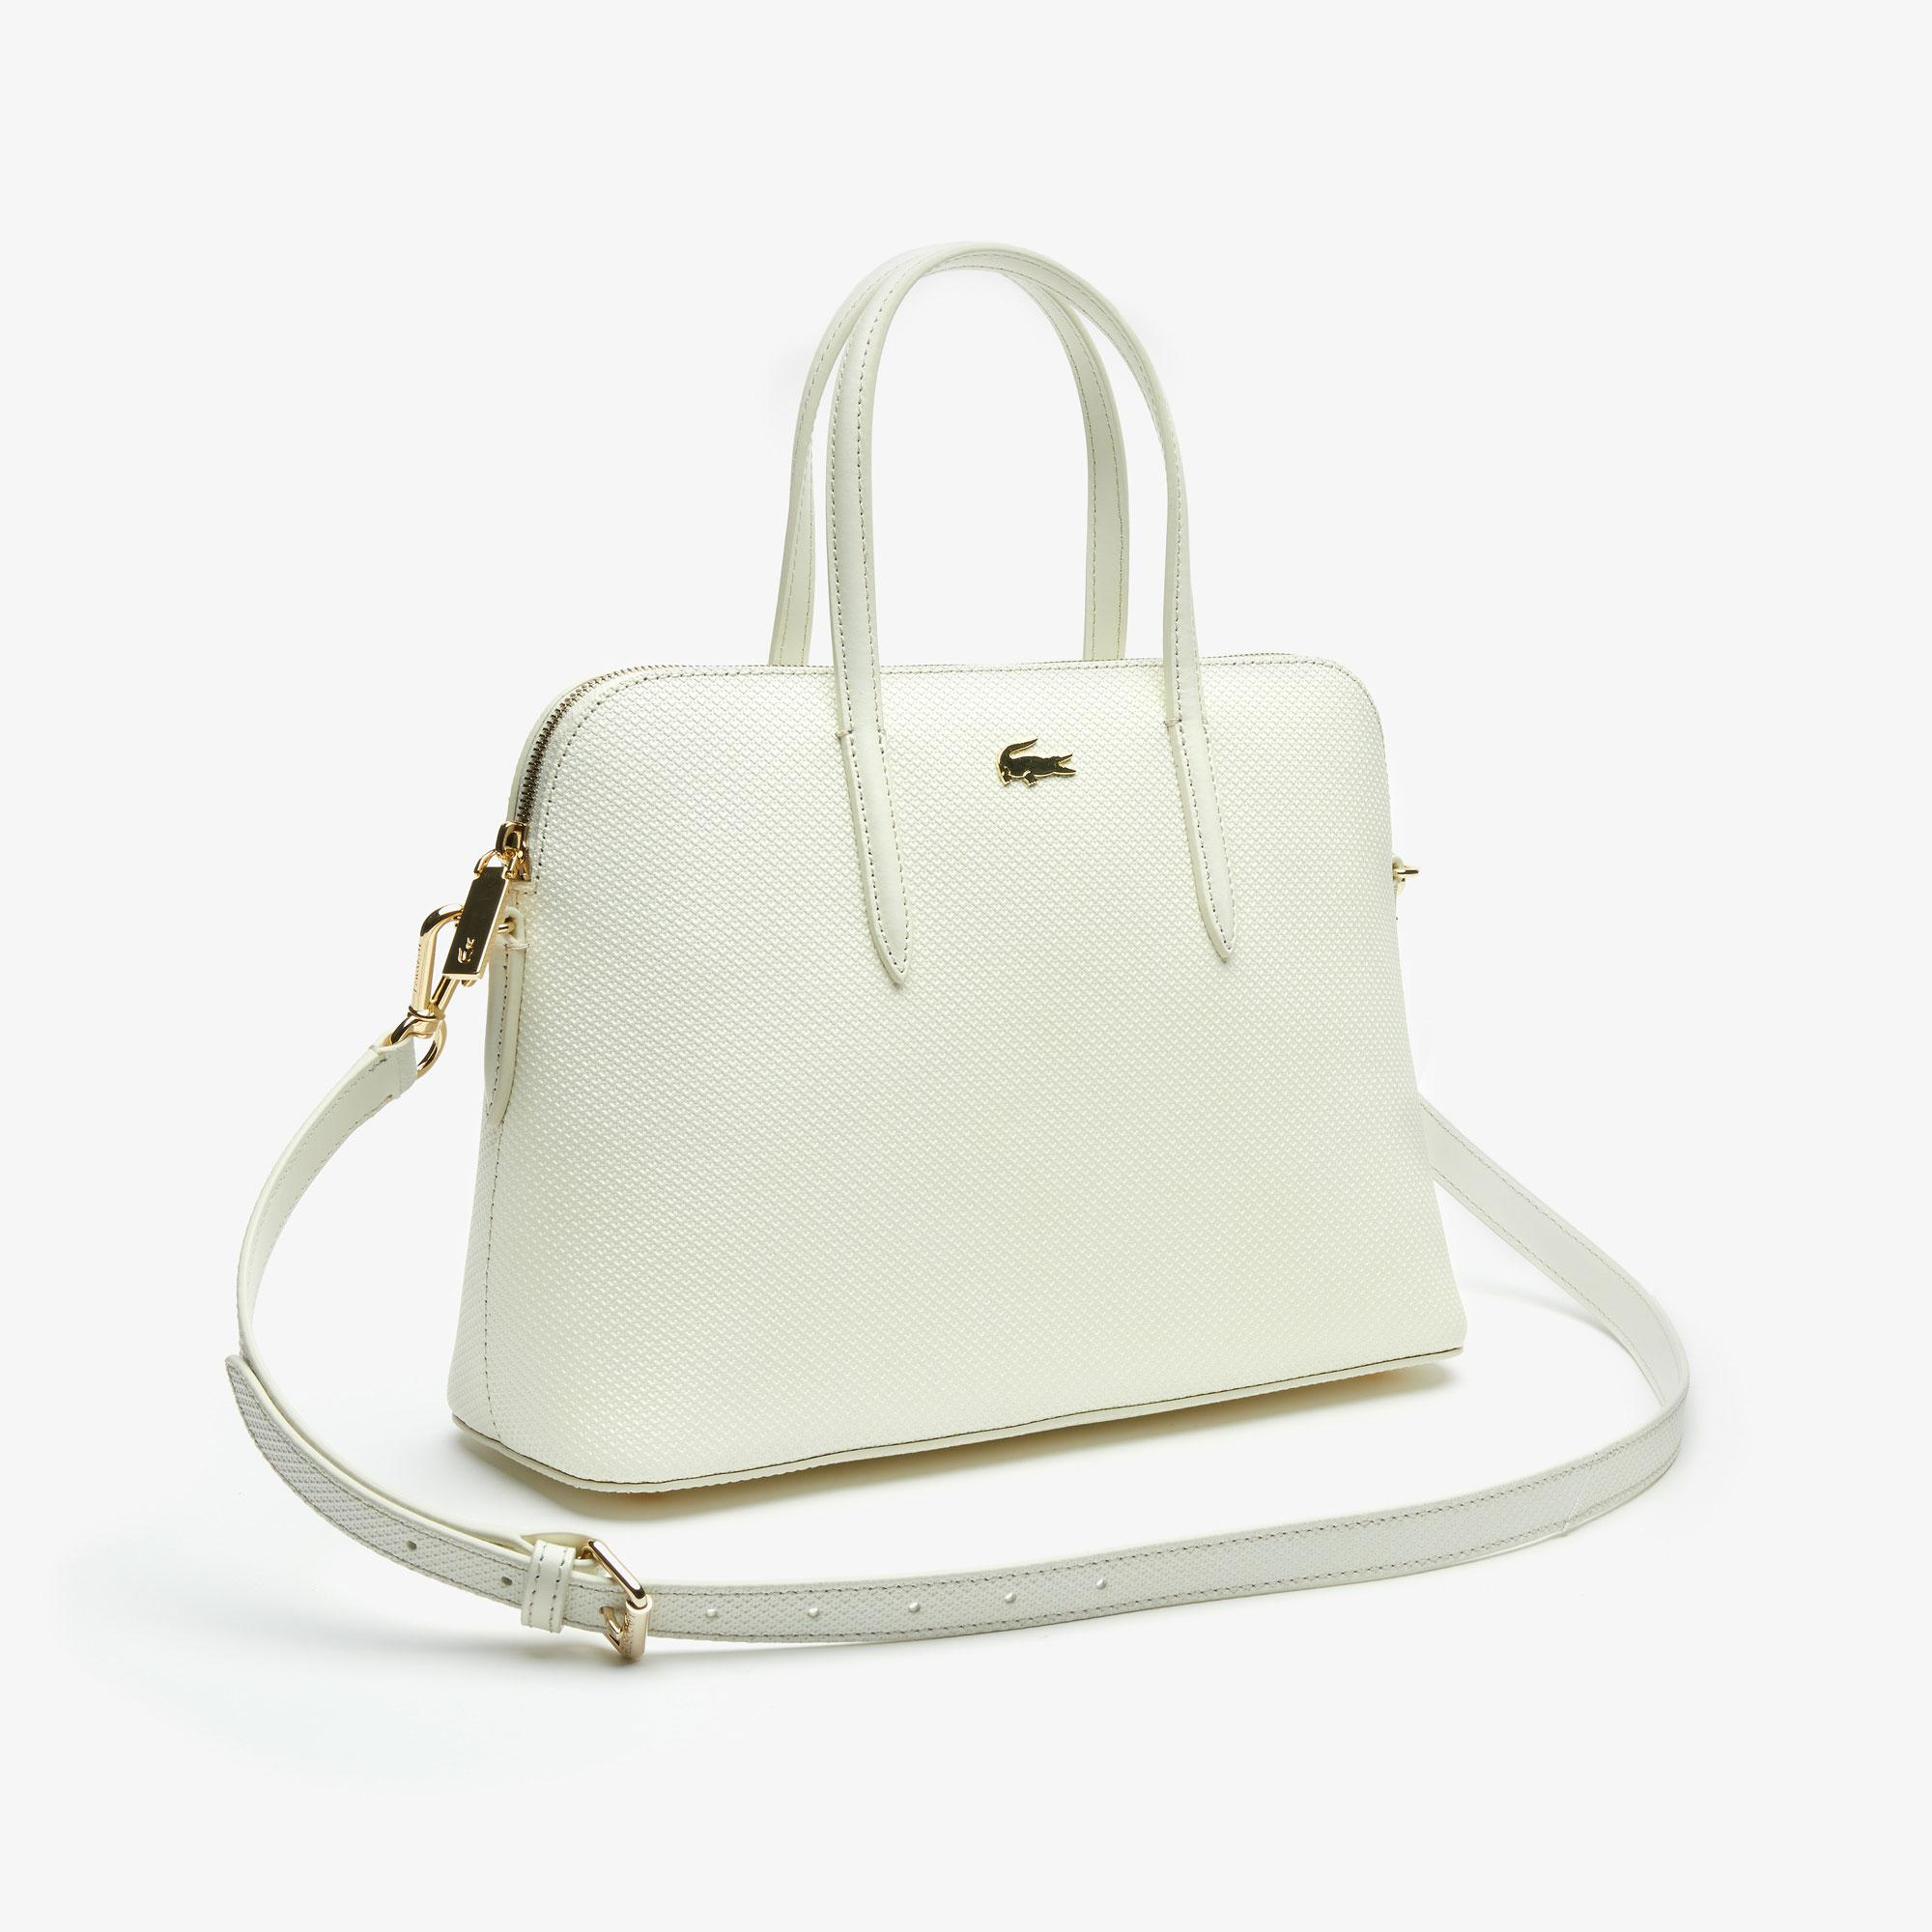 Lacoste Women's Chantaco Bag